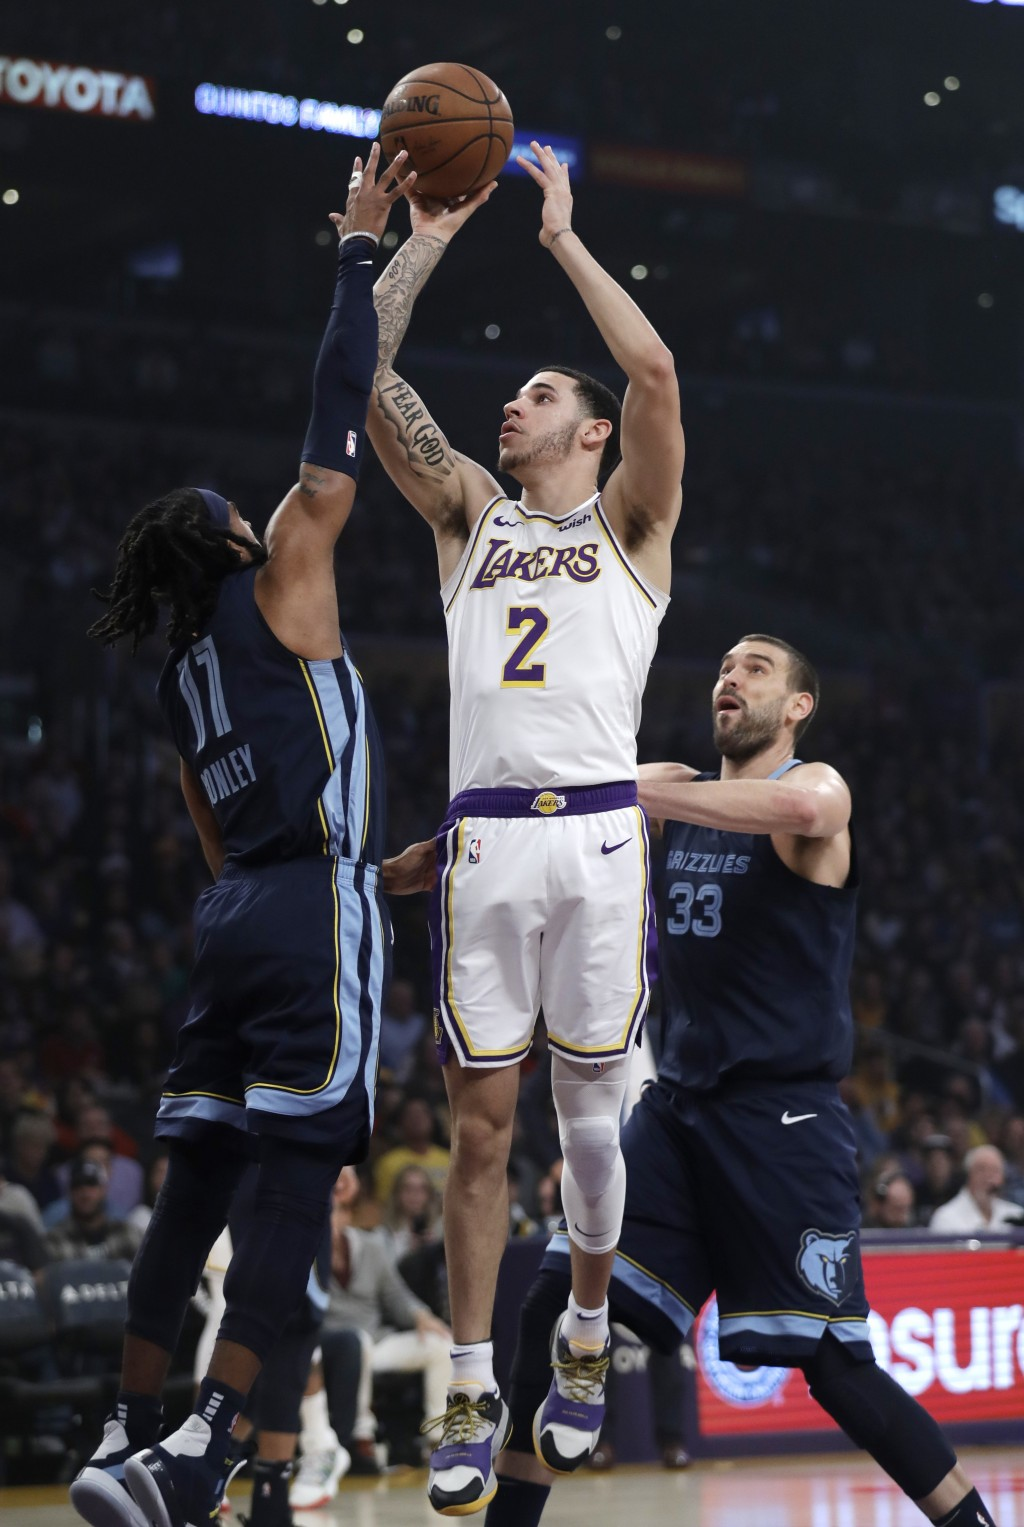 Los Angeles Lakers' Lonzo Ball (2) shoots over Memphis Grizzlies' Mike Conley, left, and Marc Gasol during the first half of an NBA basketball game Su...